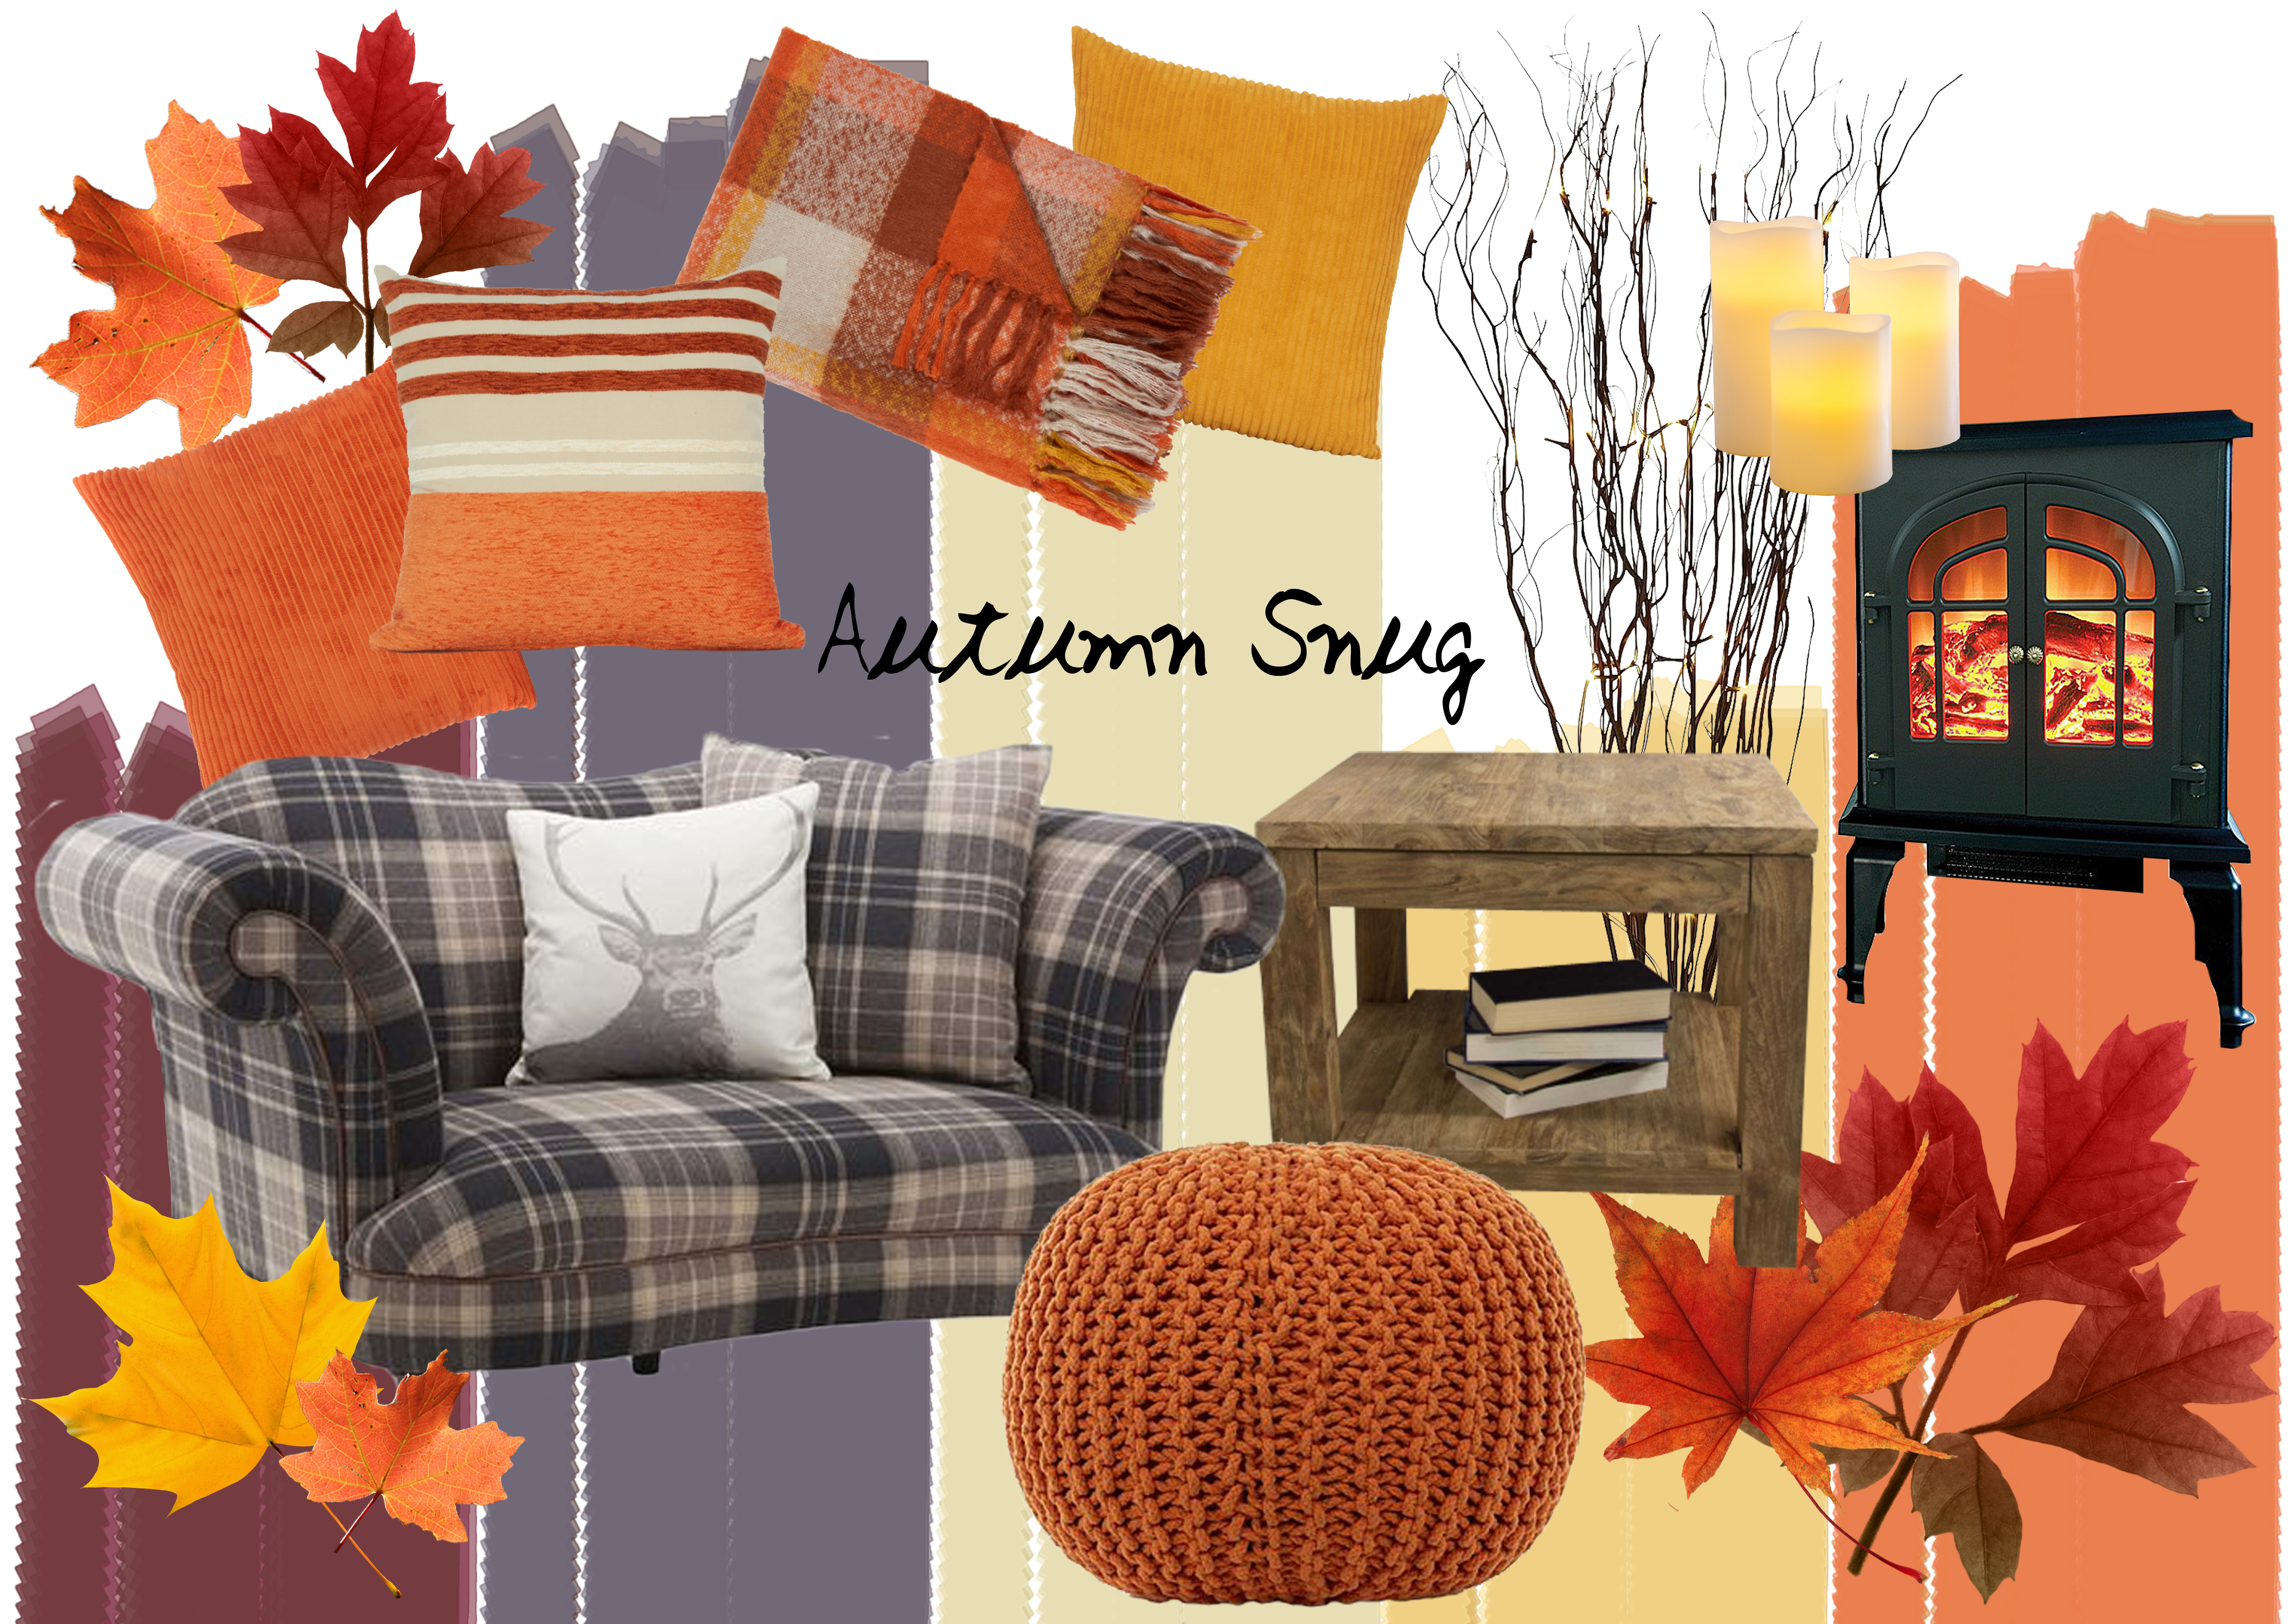 Autumn Snug - Mood Board for Autumn Decor